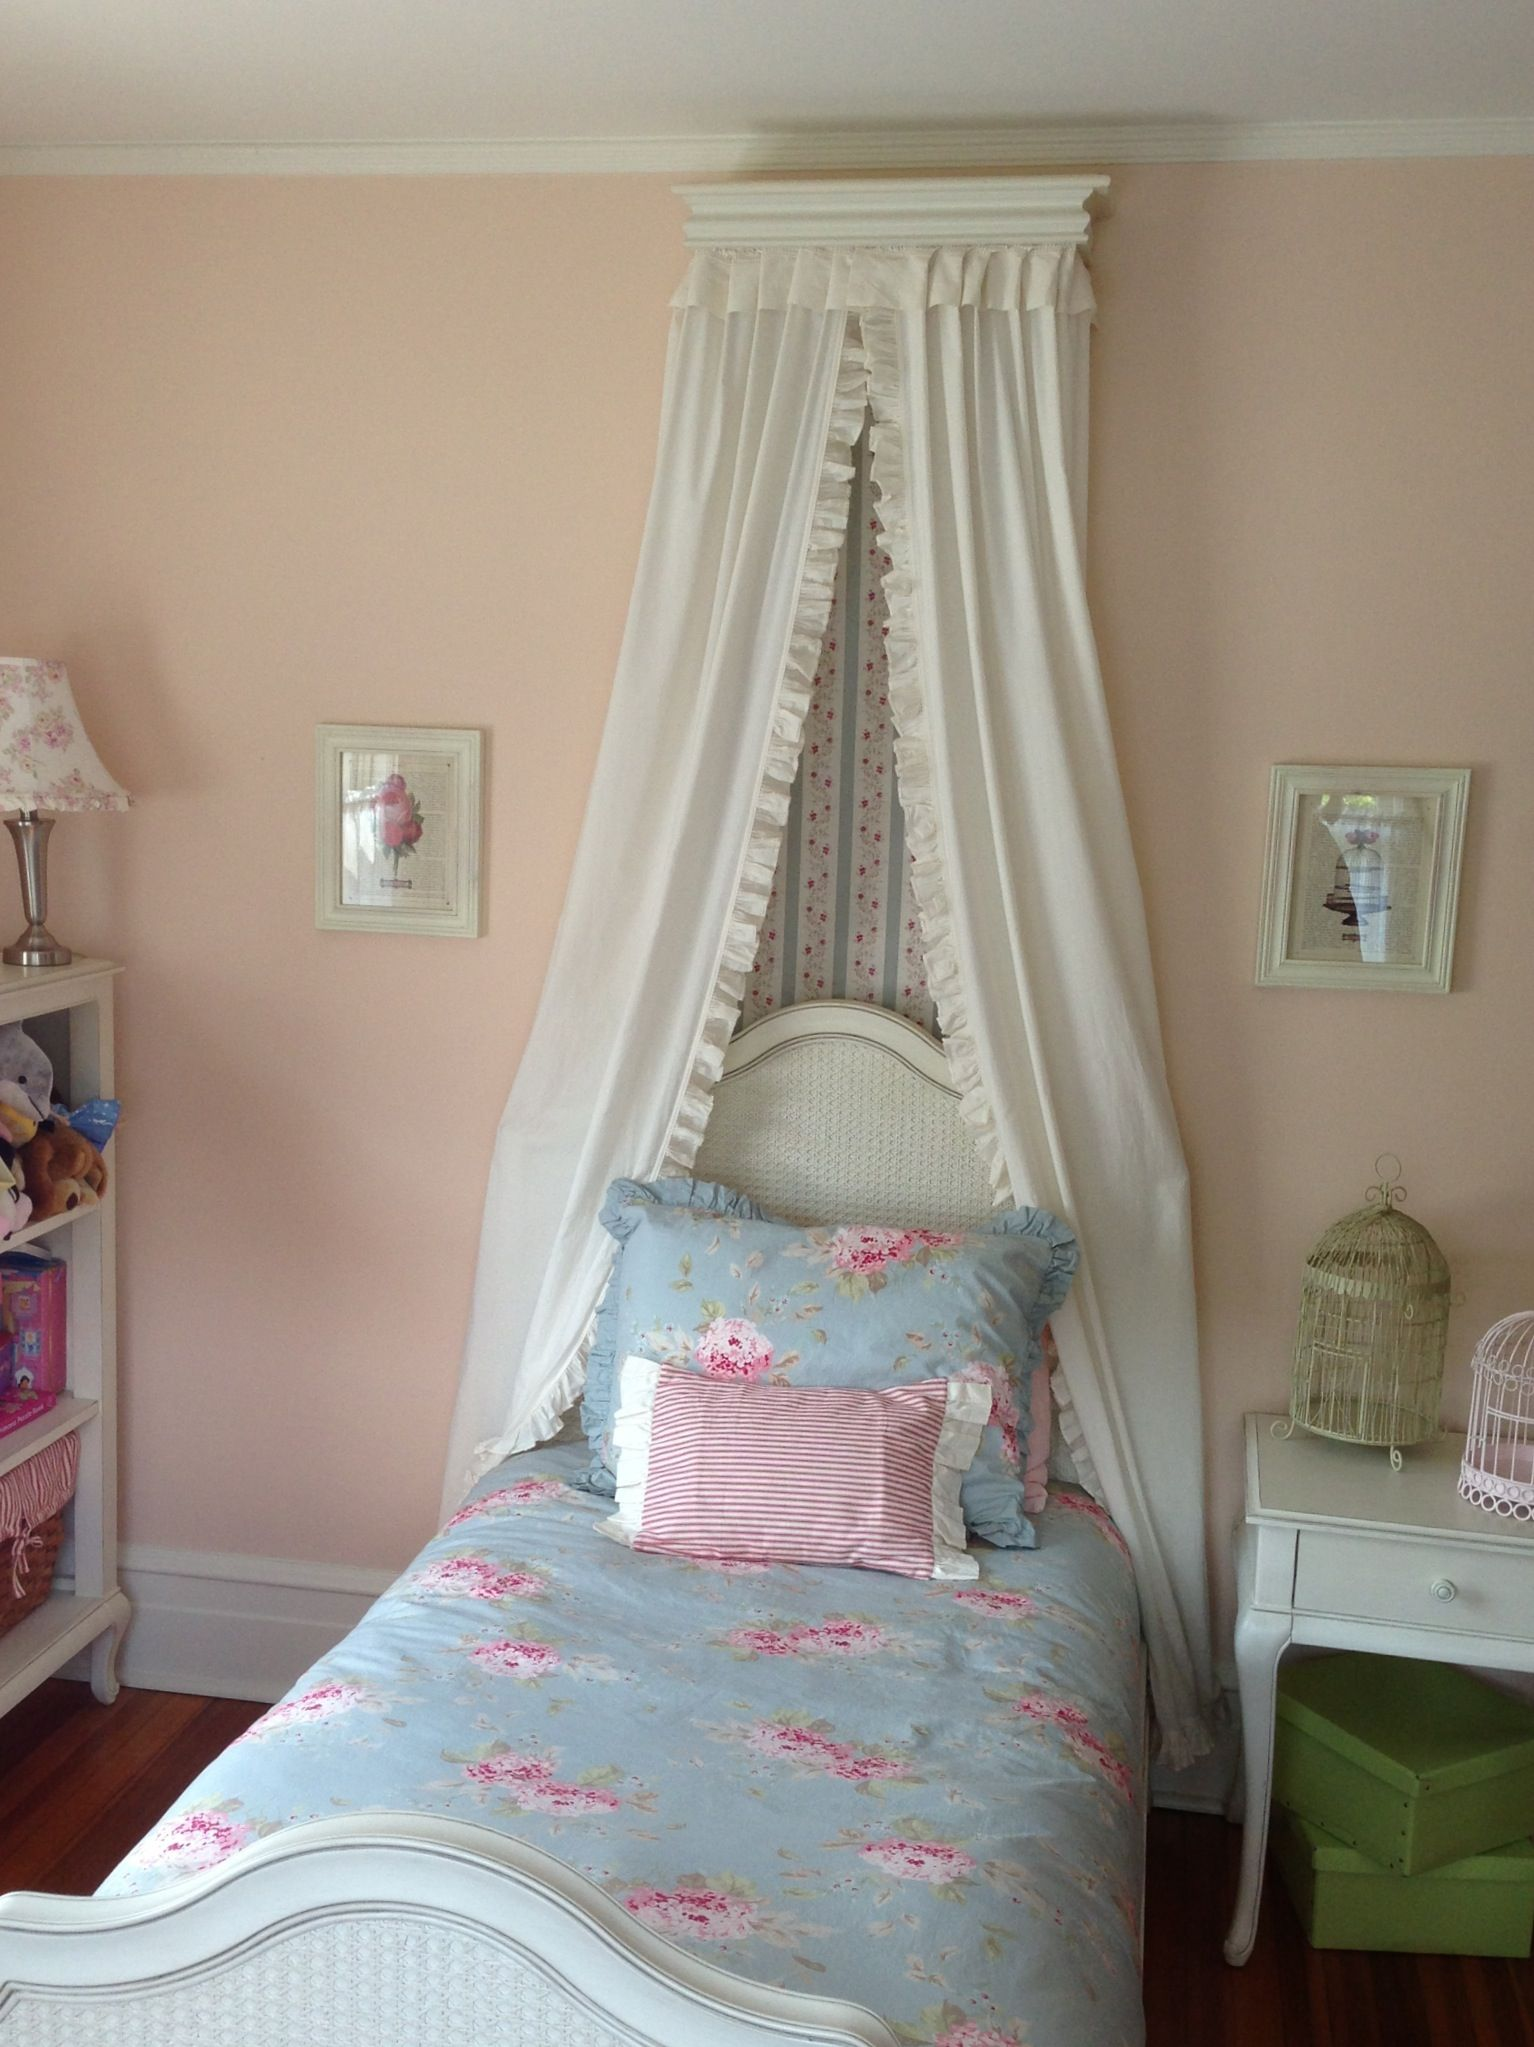 Little girl 39 s shabby chic bedroom girls room ideas - Little girls shabby chic bedroom ...